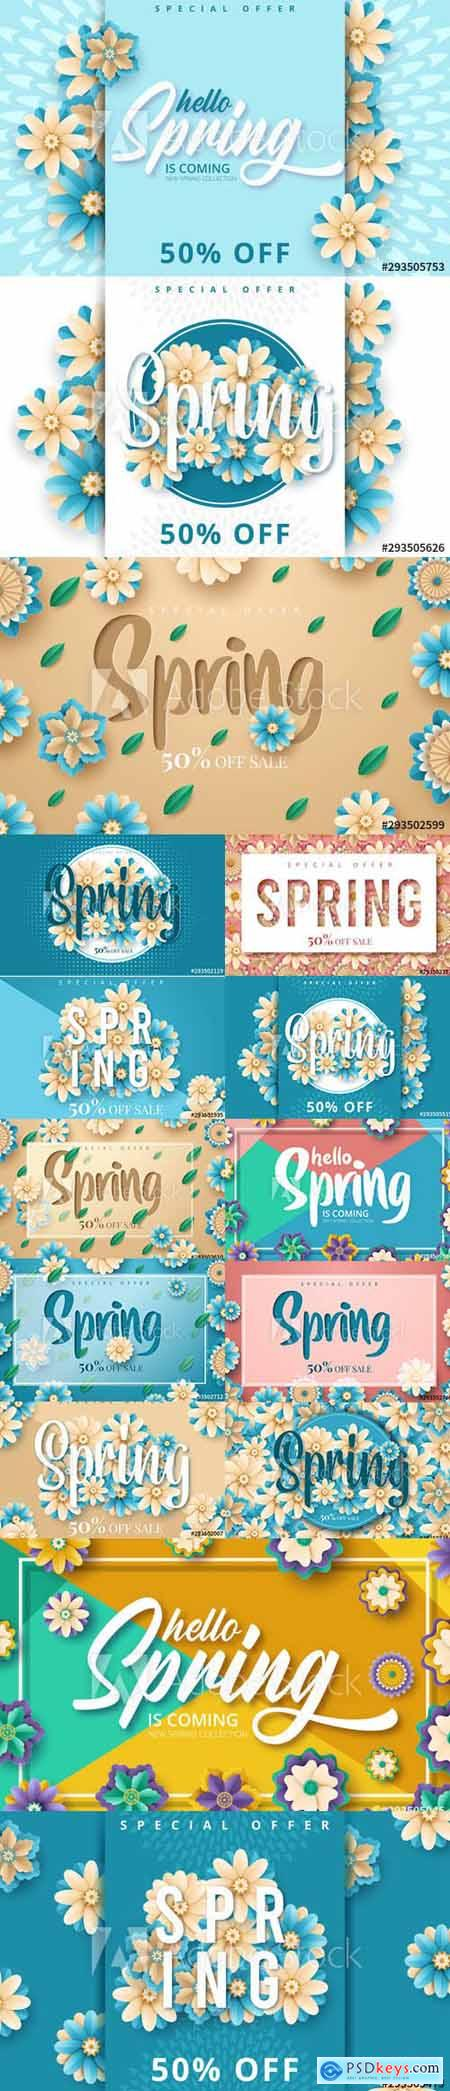 Set of Spring Sale Backgrounds with Flowers vol4